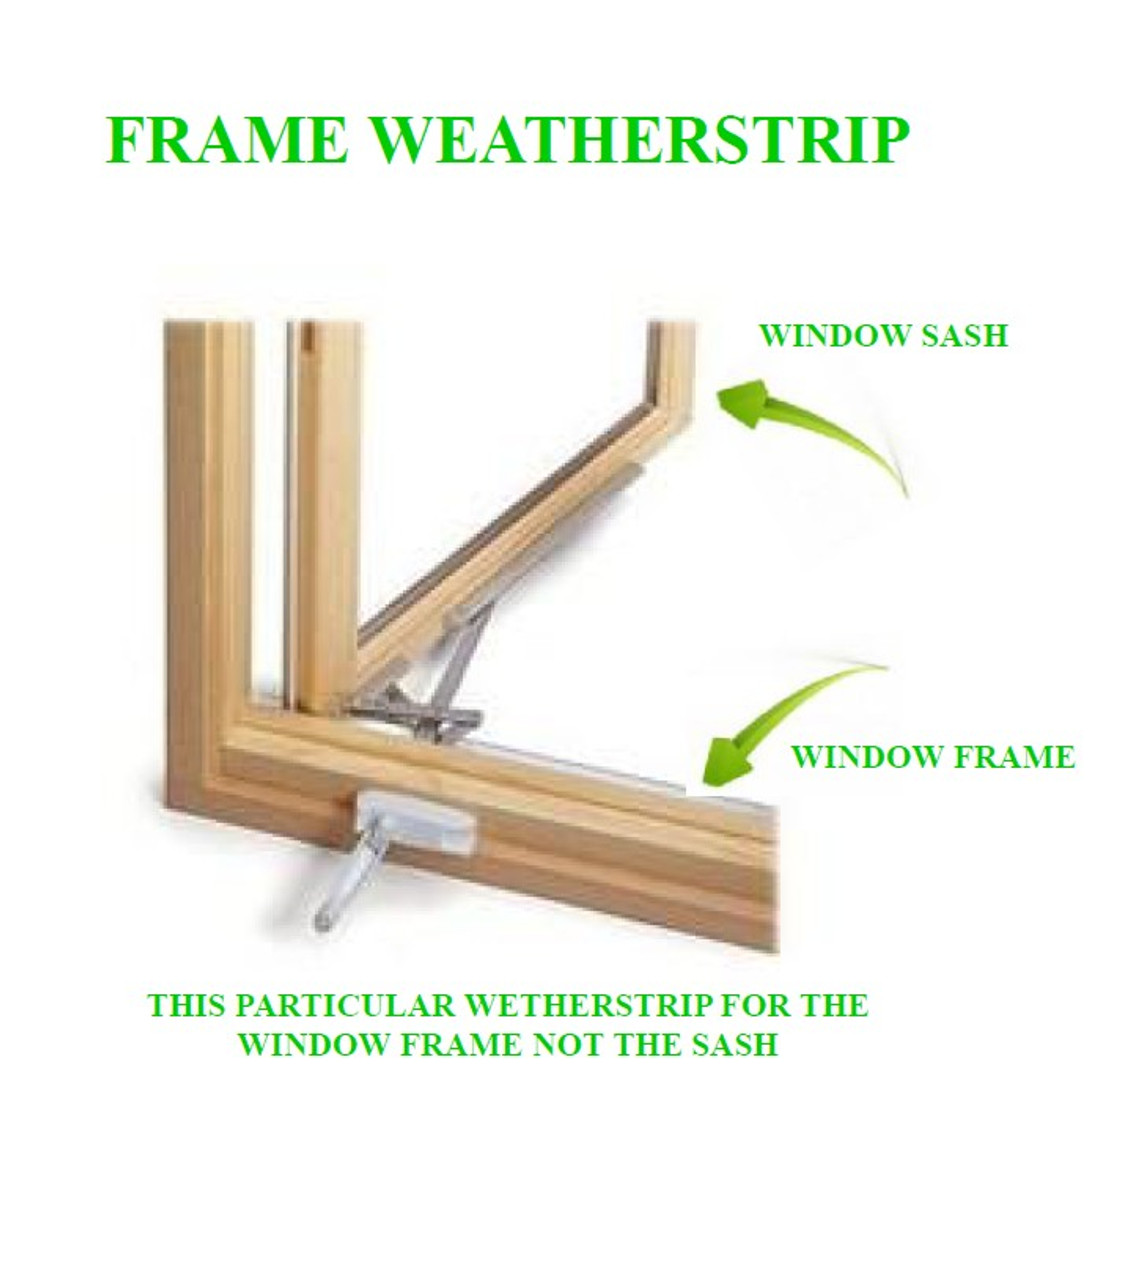 W-STRIP KIT (EACH KIT COMES WITH QTY (4) 72'' LONG PIECES) OF 176324 FRAME WEATHER STRIP FOR CLAD EXTERIOR WINDOWS REPLACES THE OLD STYLE: FOR UNITS 1990-1999